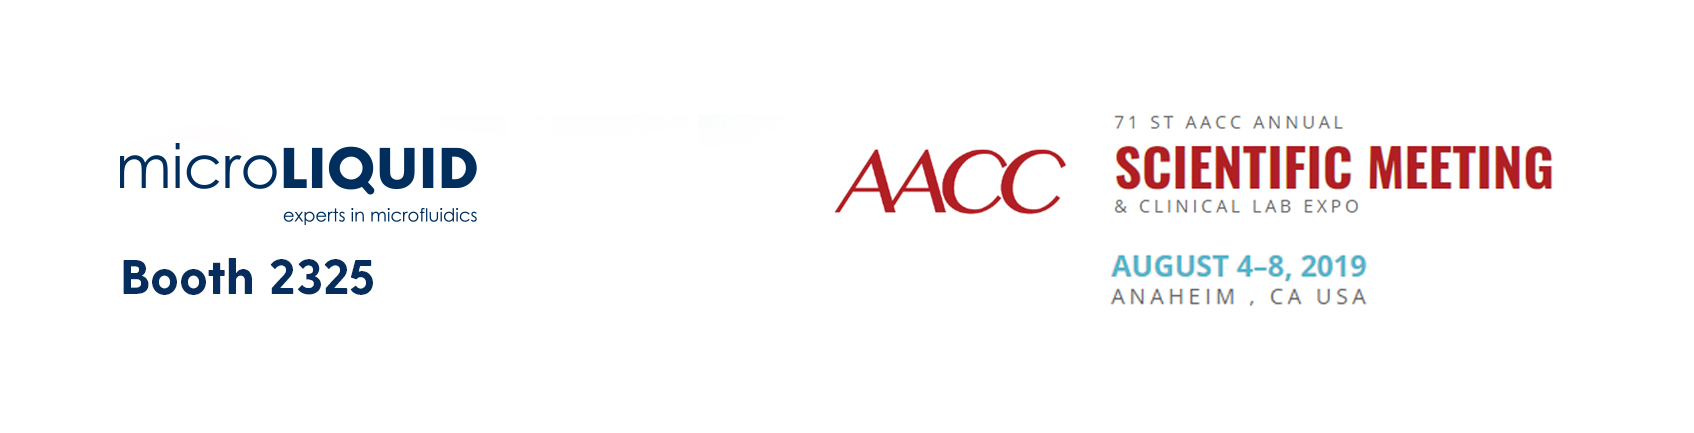 Join microLIQUID during71st AACC Annual Scientific Meeting & Clinical Lab Expo,this August6-8 in Anaheim, CA